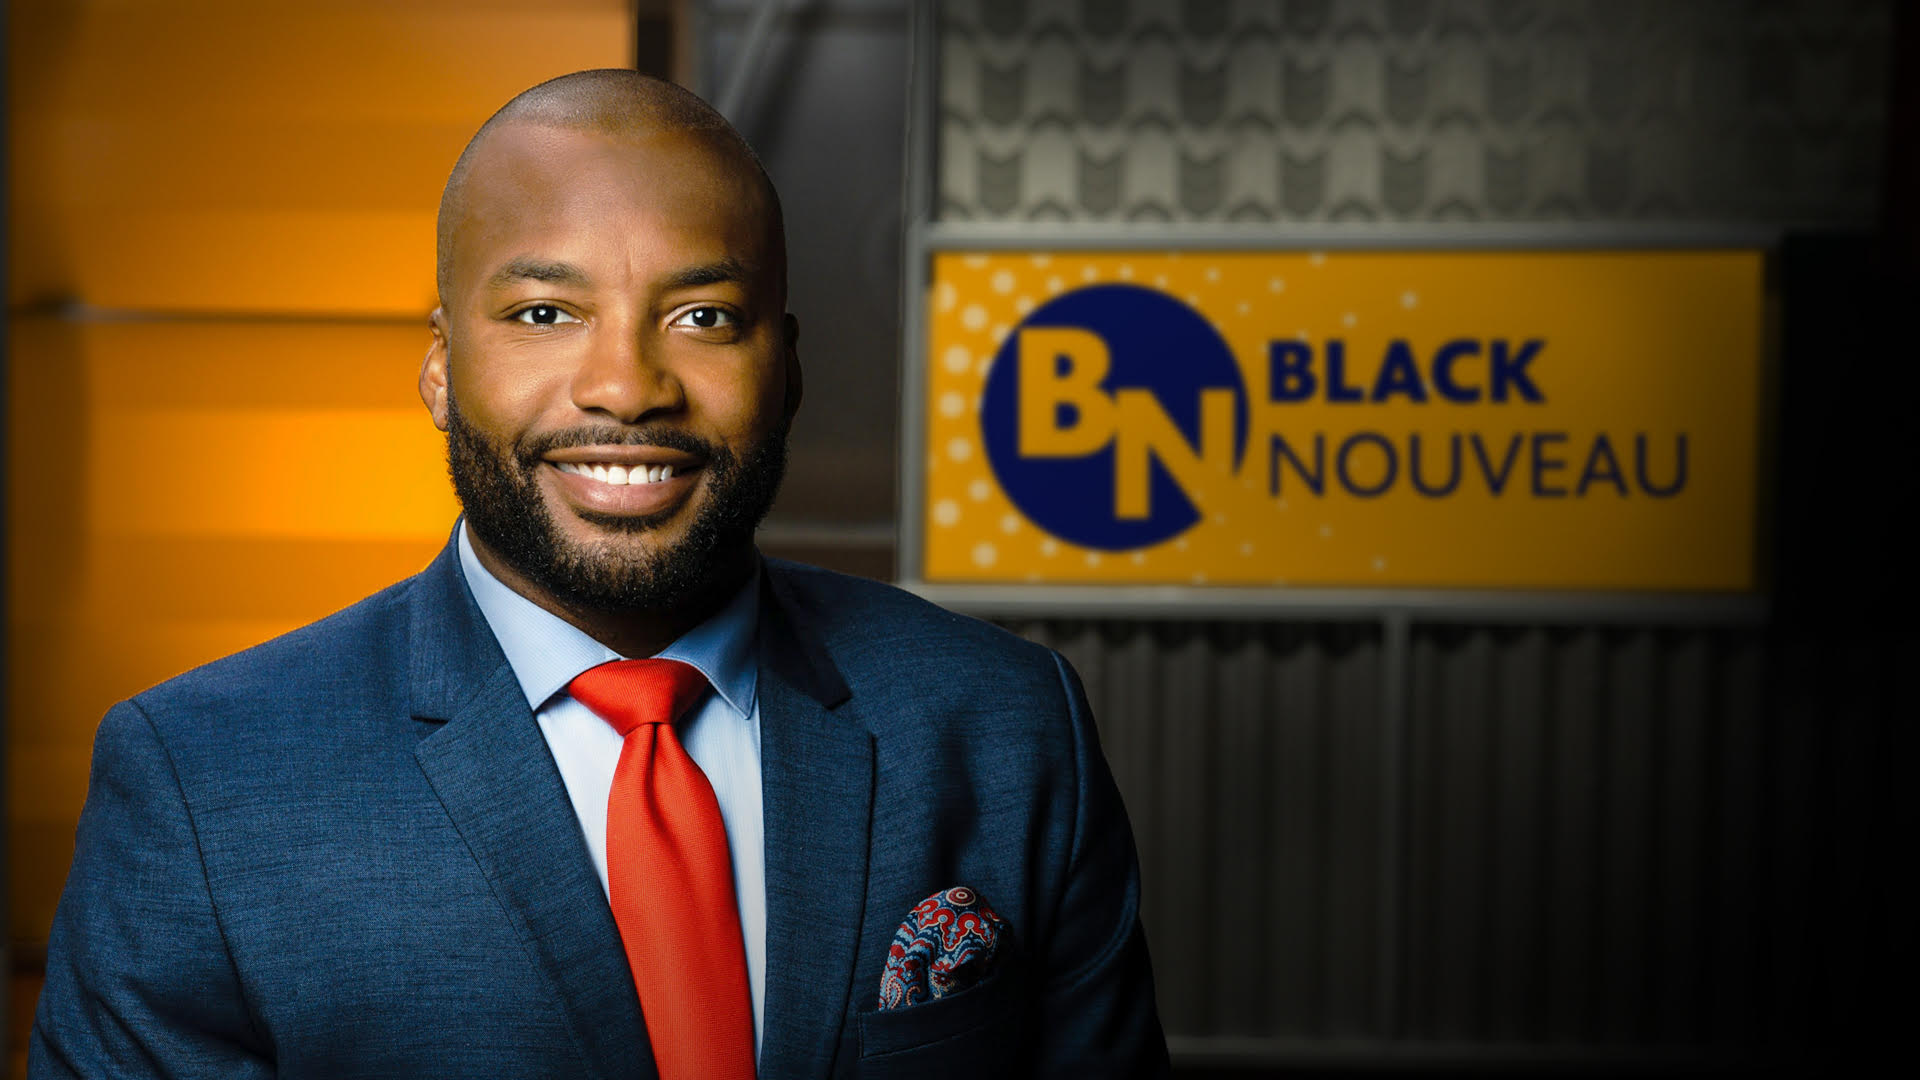 New Season of Black Nouveau Brings New Host